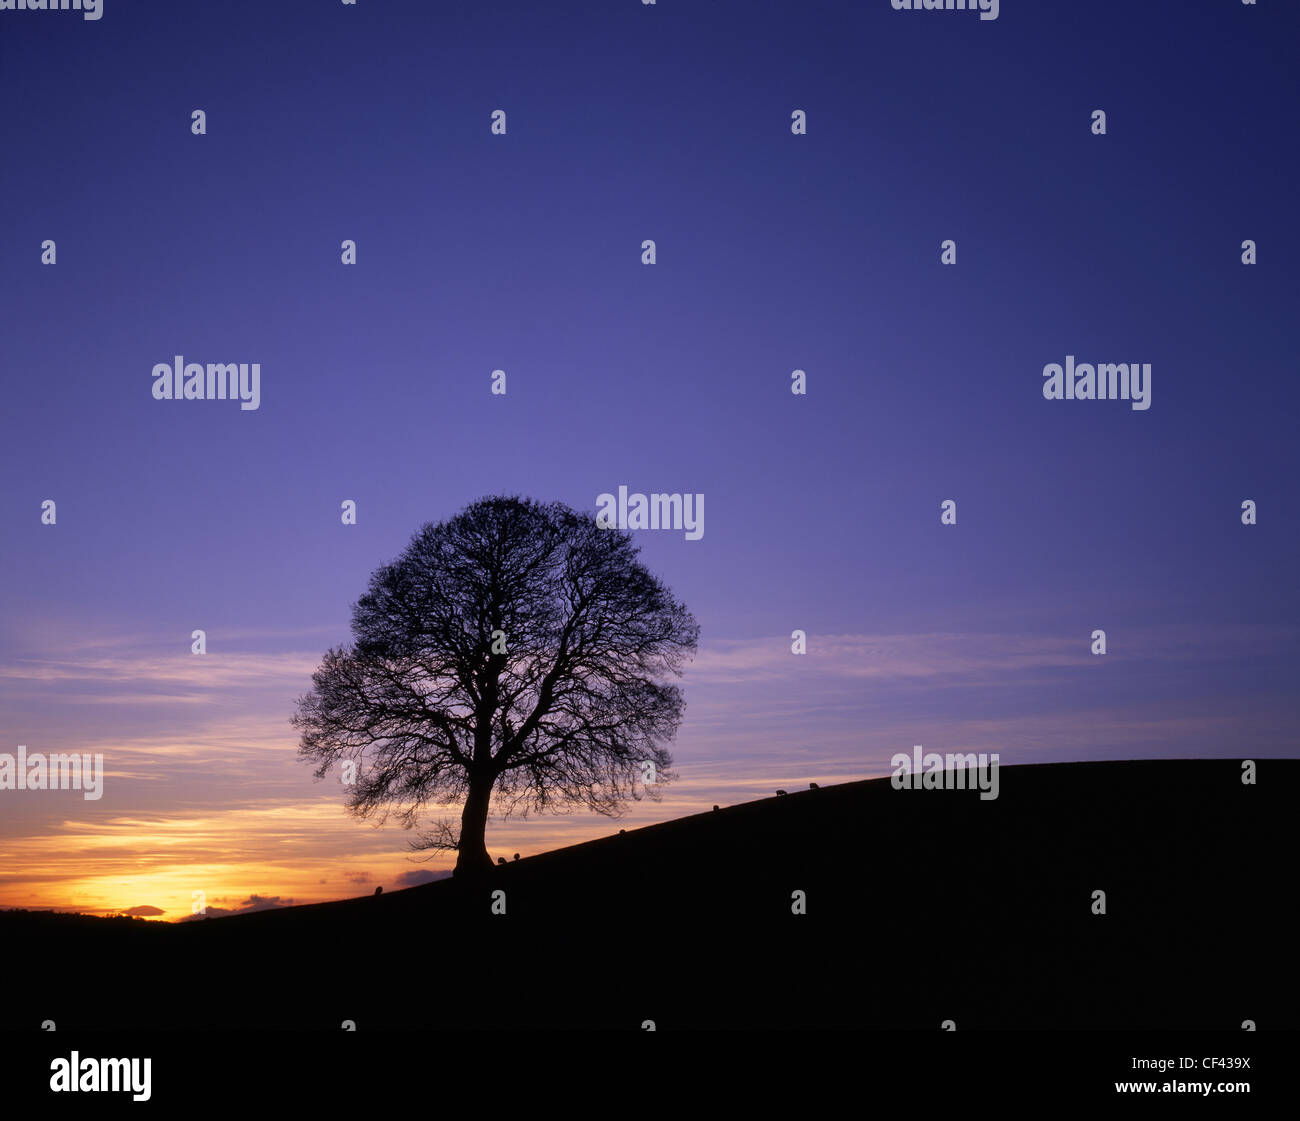 Sheep grazing by a lone tree silhouetted by a winter sunset. - Stock Image